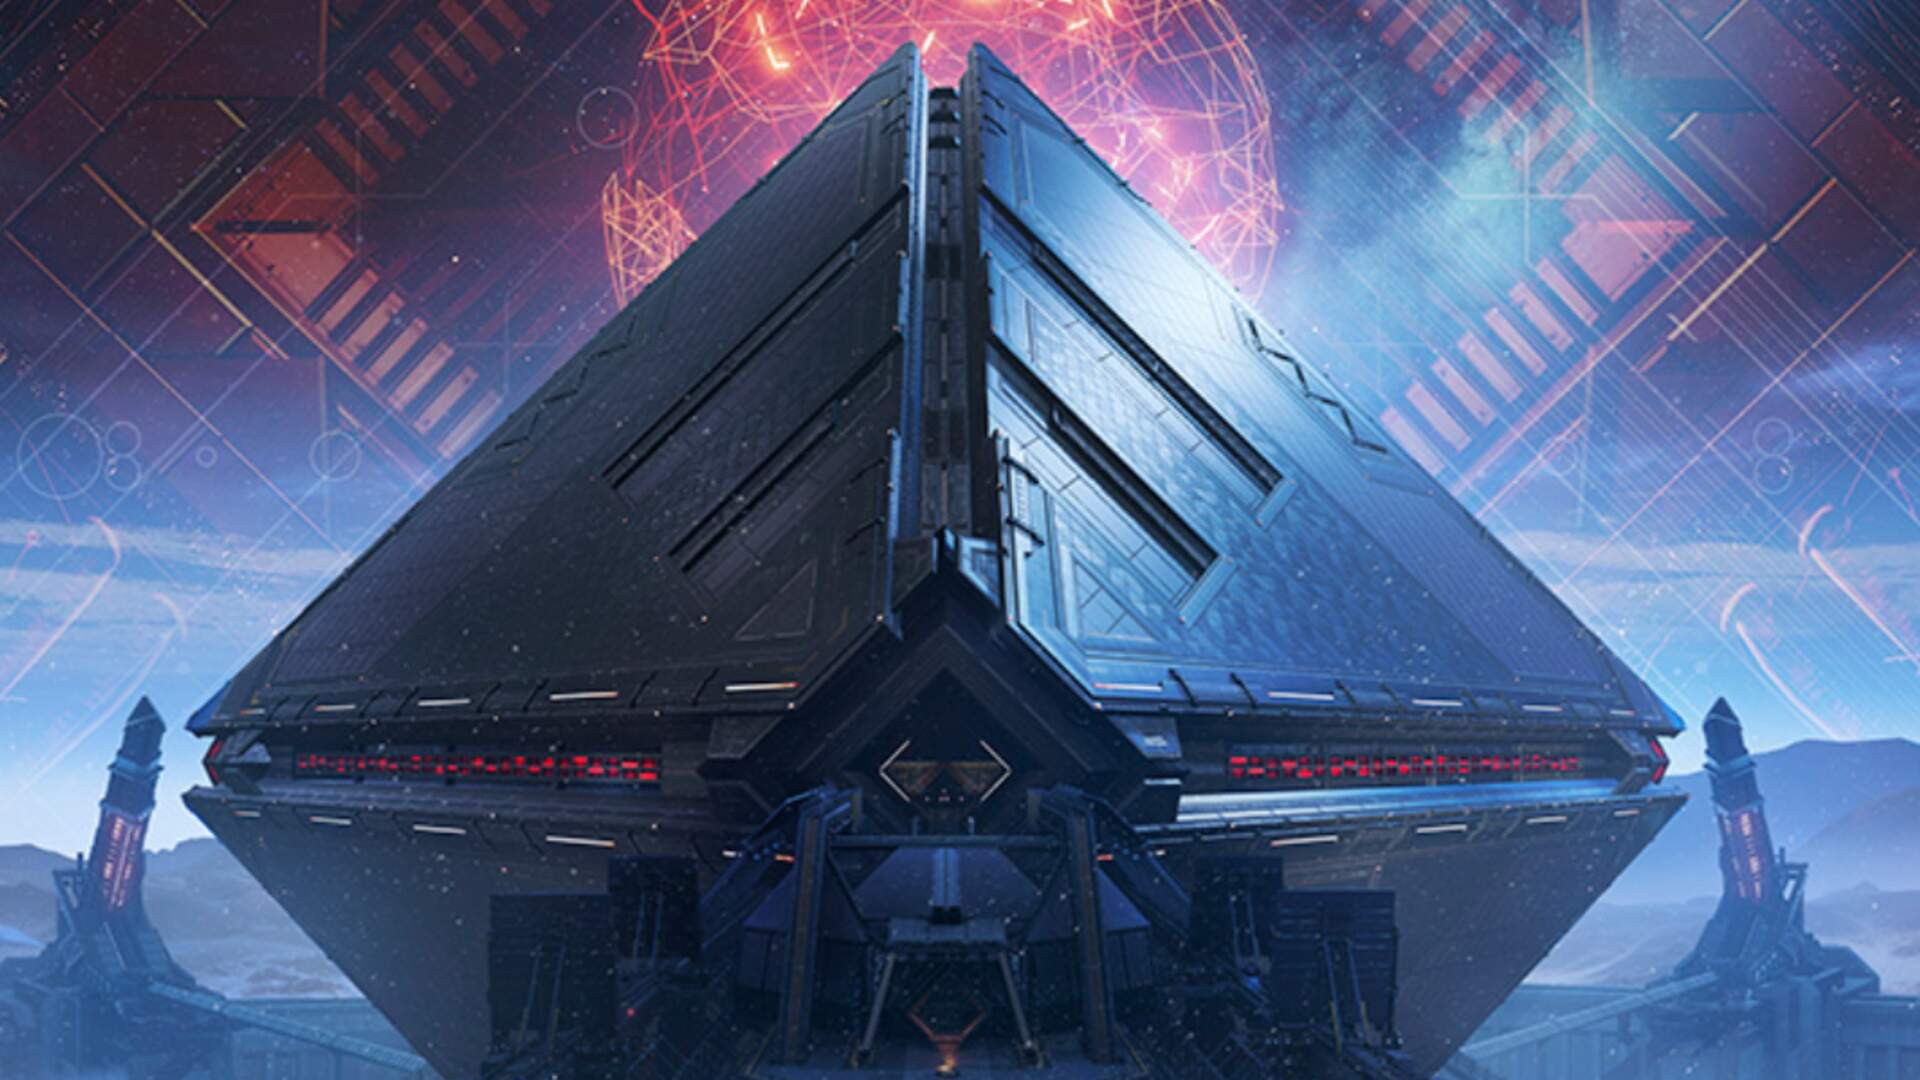 Destiny 2 Spire of Stars Raid Lair Guide - How to Complete Statue Garden and Celestial Observatory Areas, Secret Chest Location